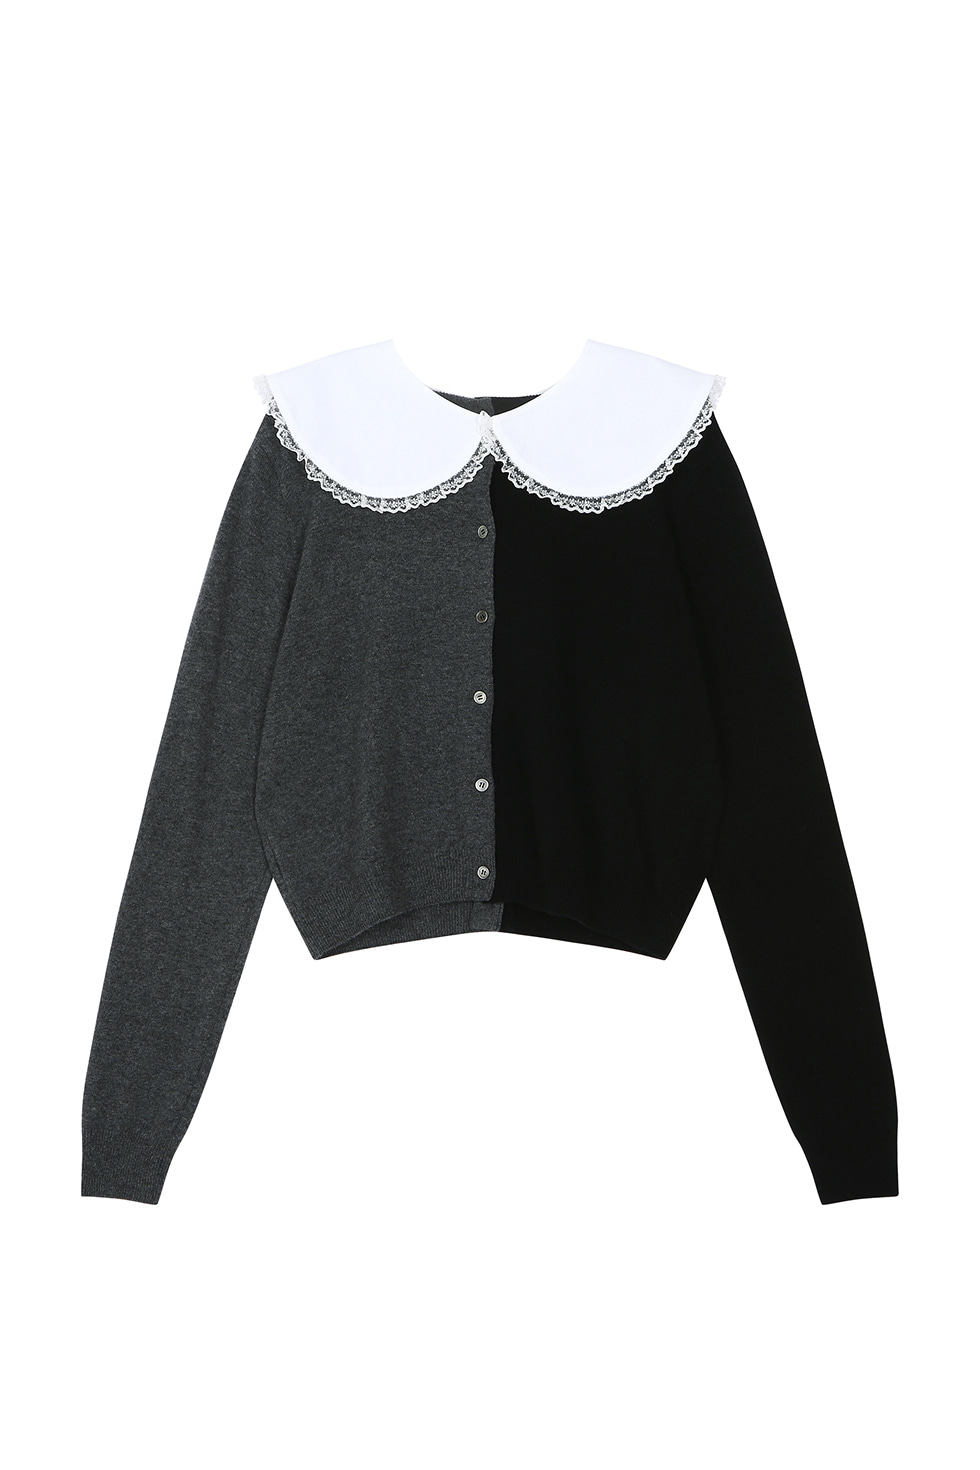 COTTON COLLAR CARDIGAN - BLACK